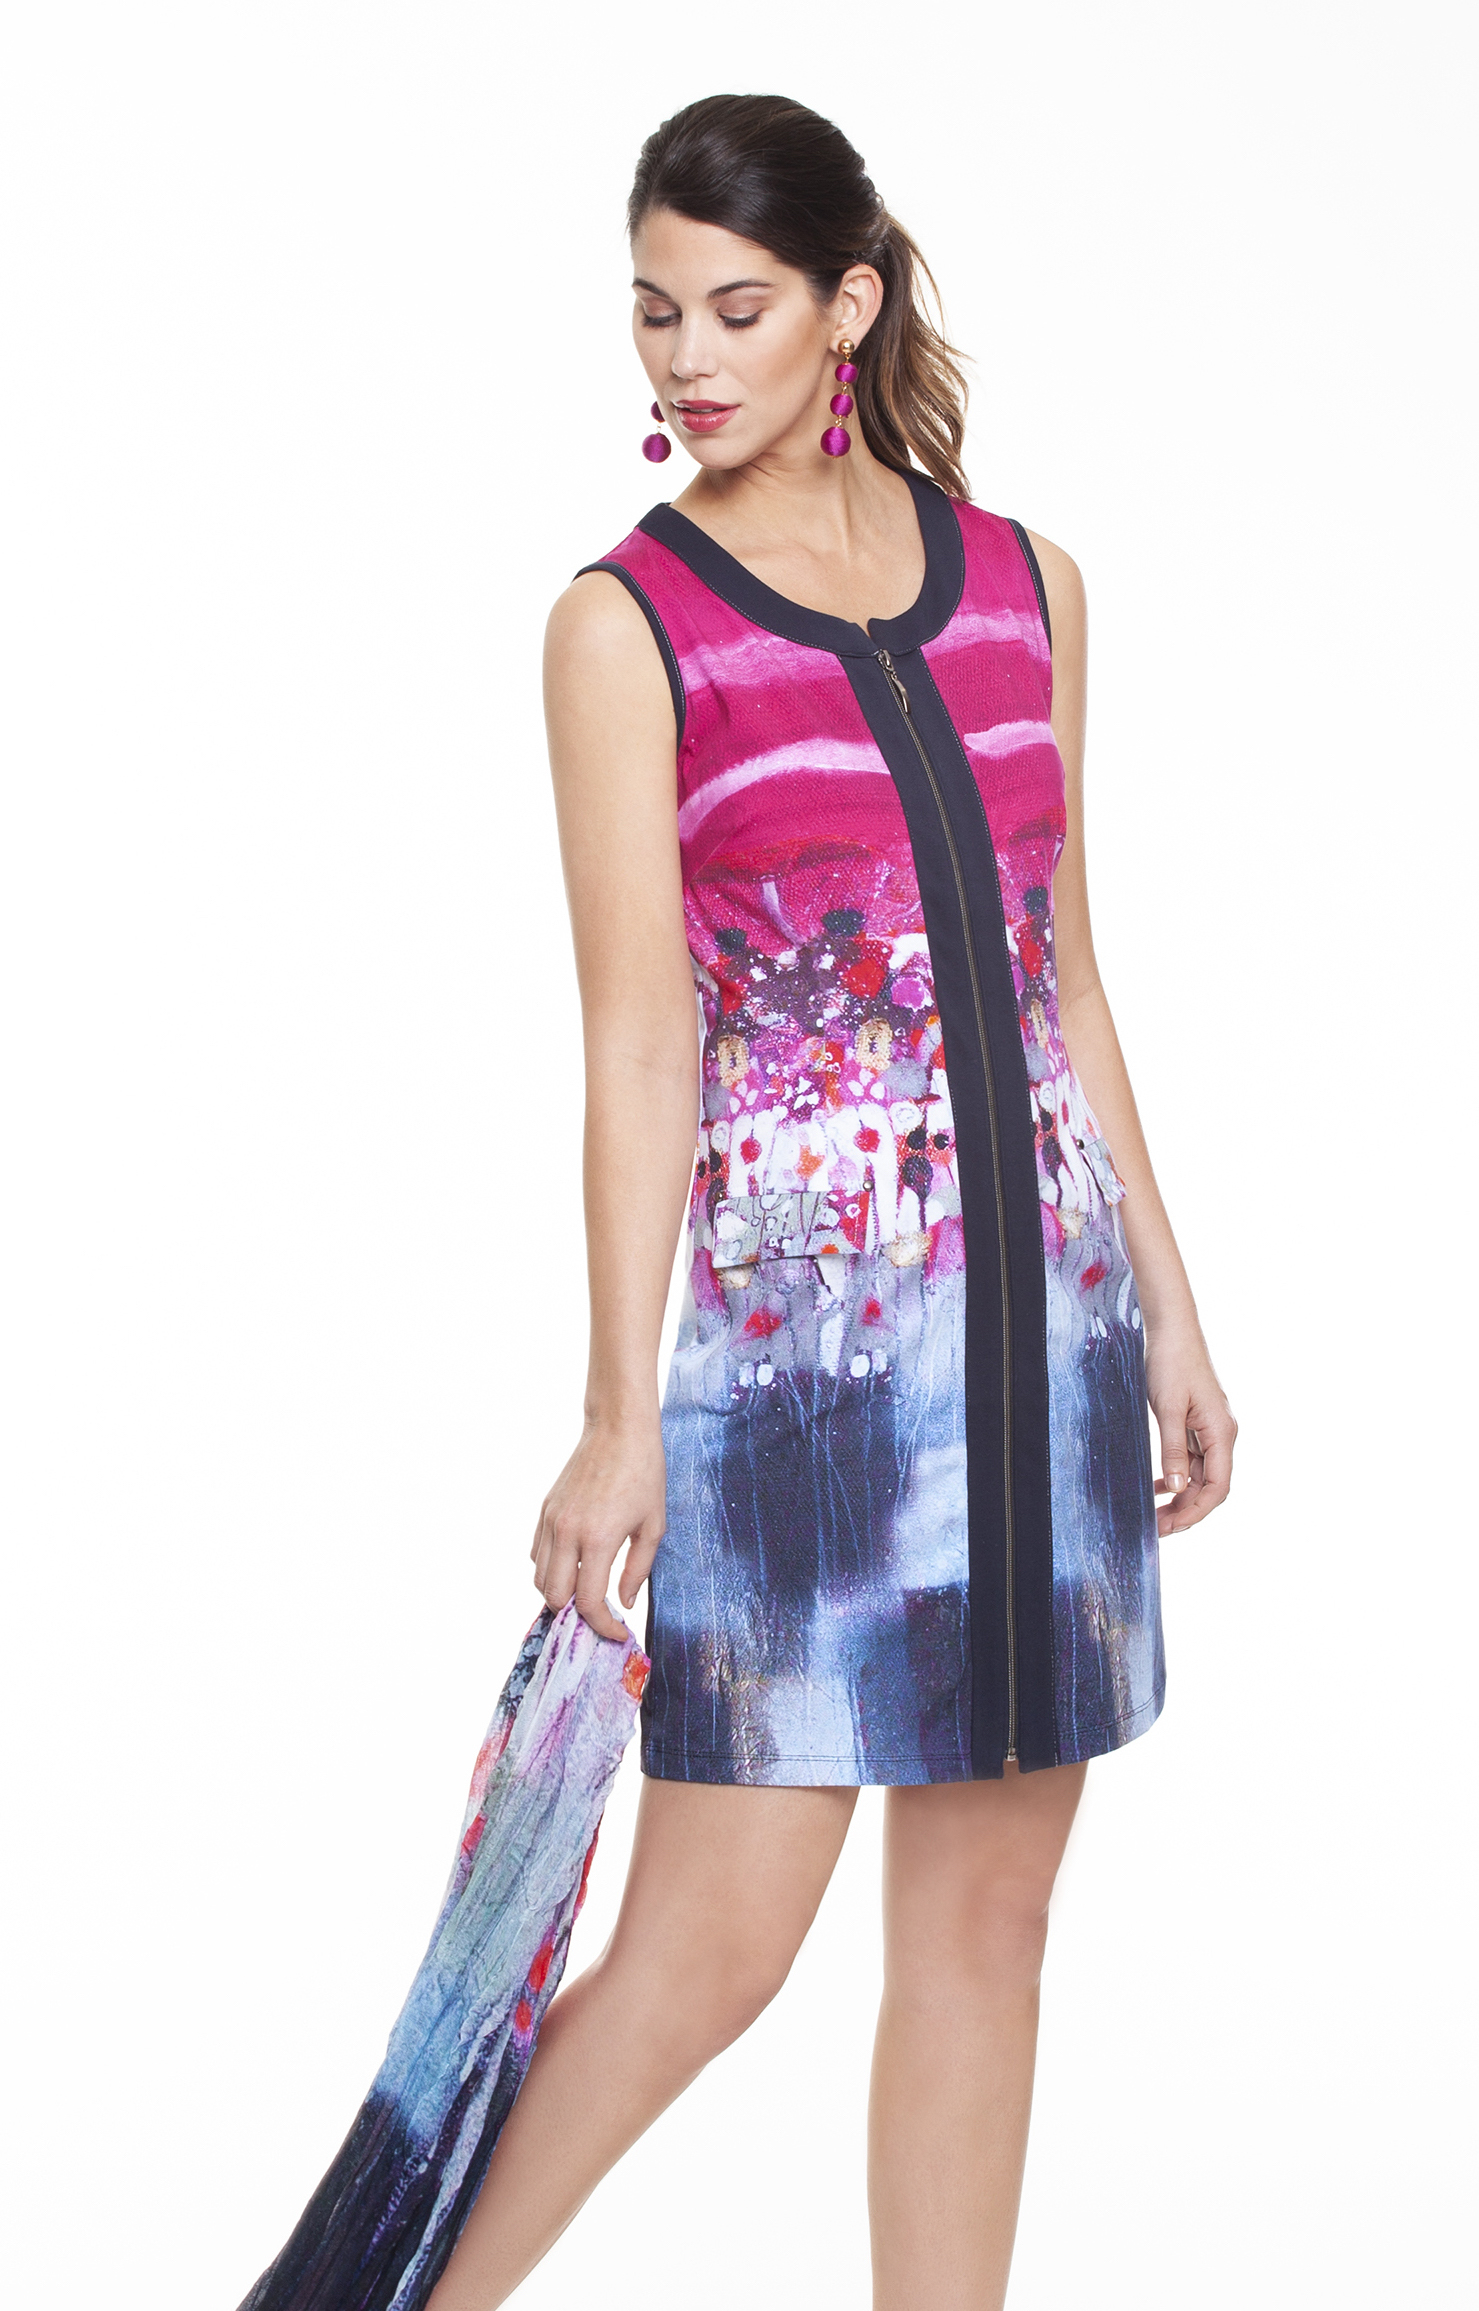 Simply Art Dolcezza: Fuschia Candy Storm Abstract Art Zip Dress (2 Left!) DOLCEZZA_SA_19653